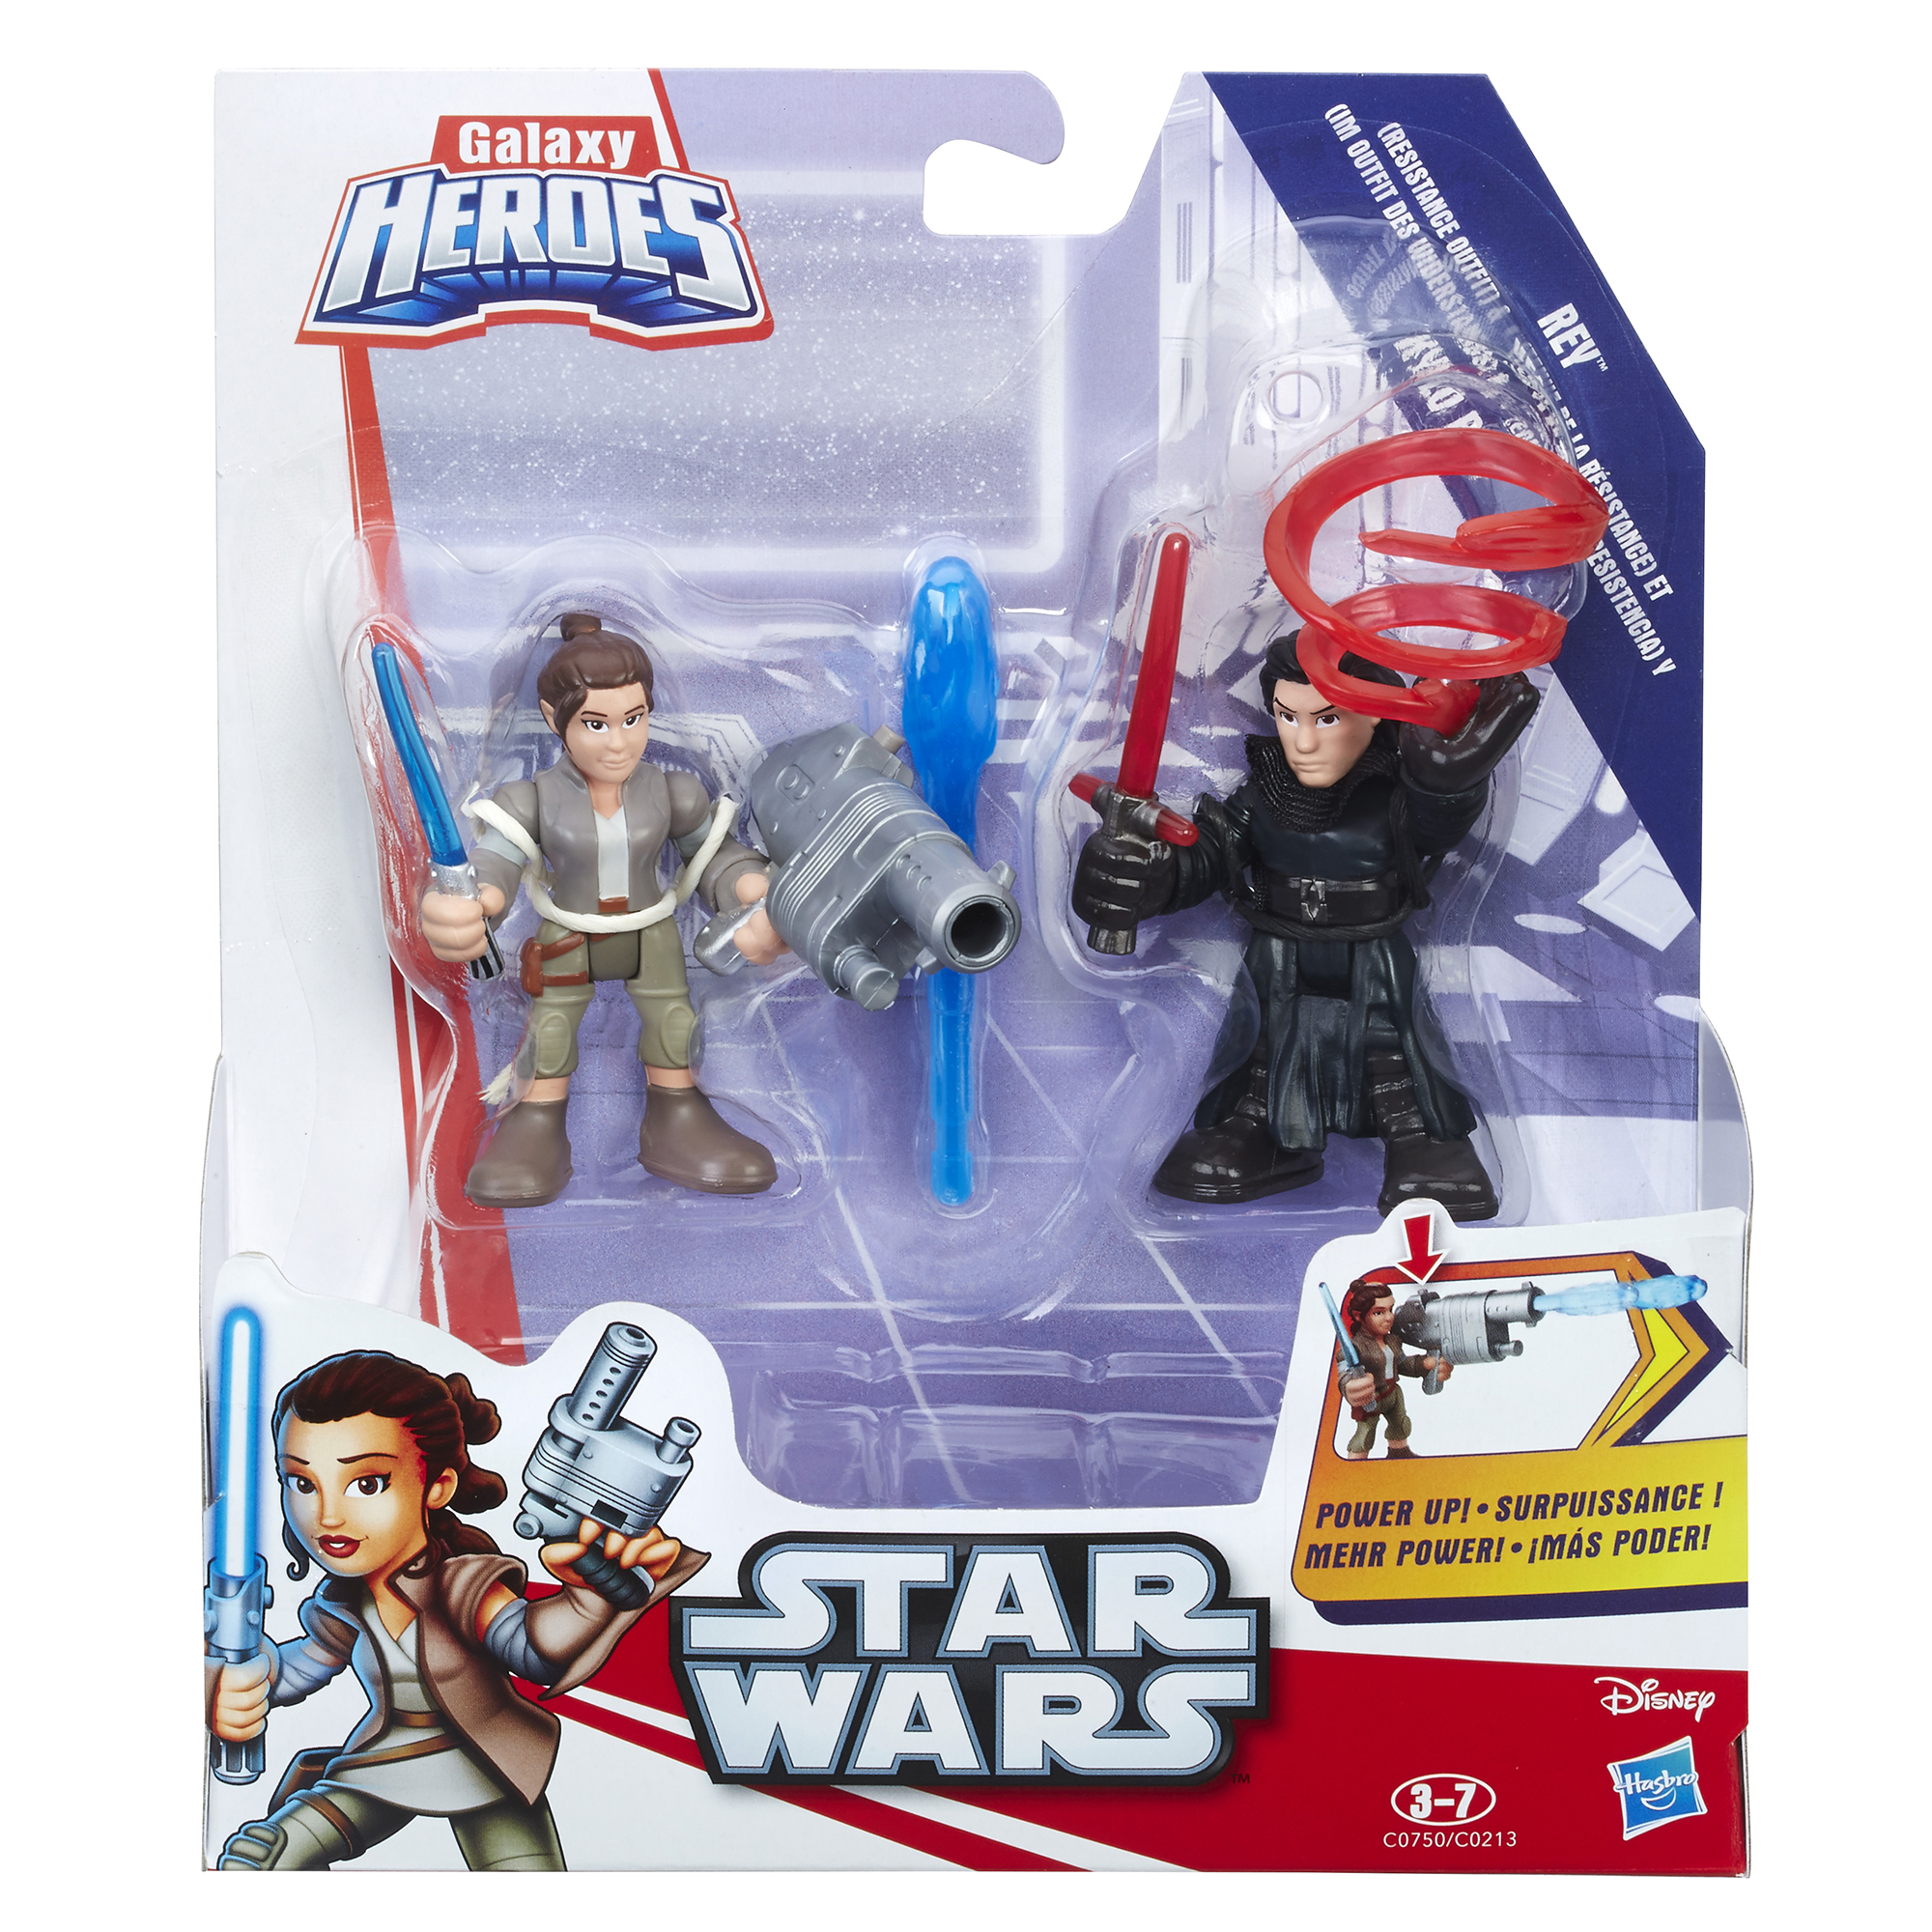 Star Wars Galactic Heroes Power Up 2 Pack Assortment